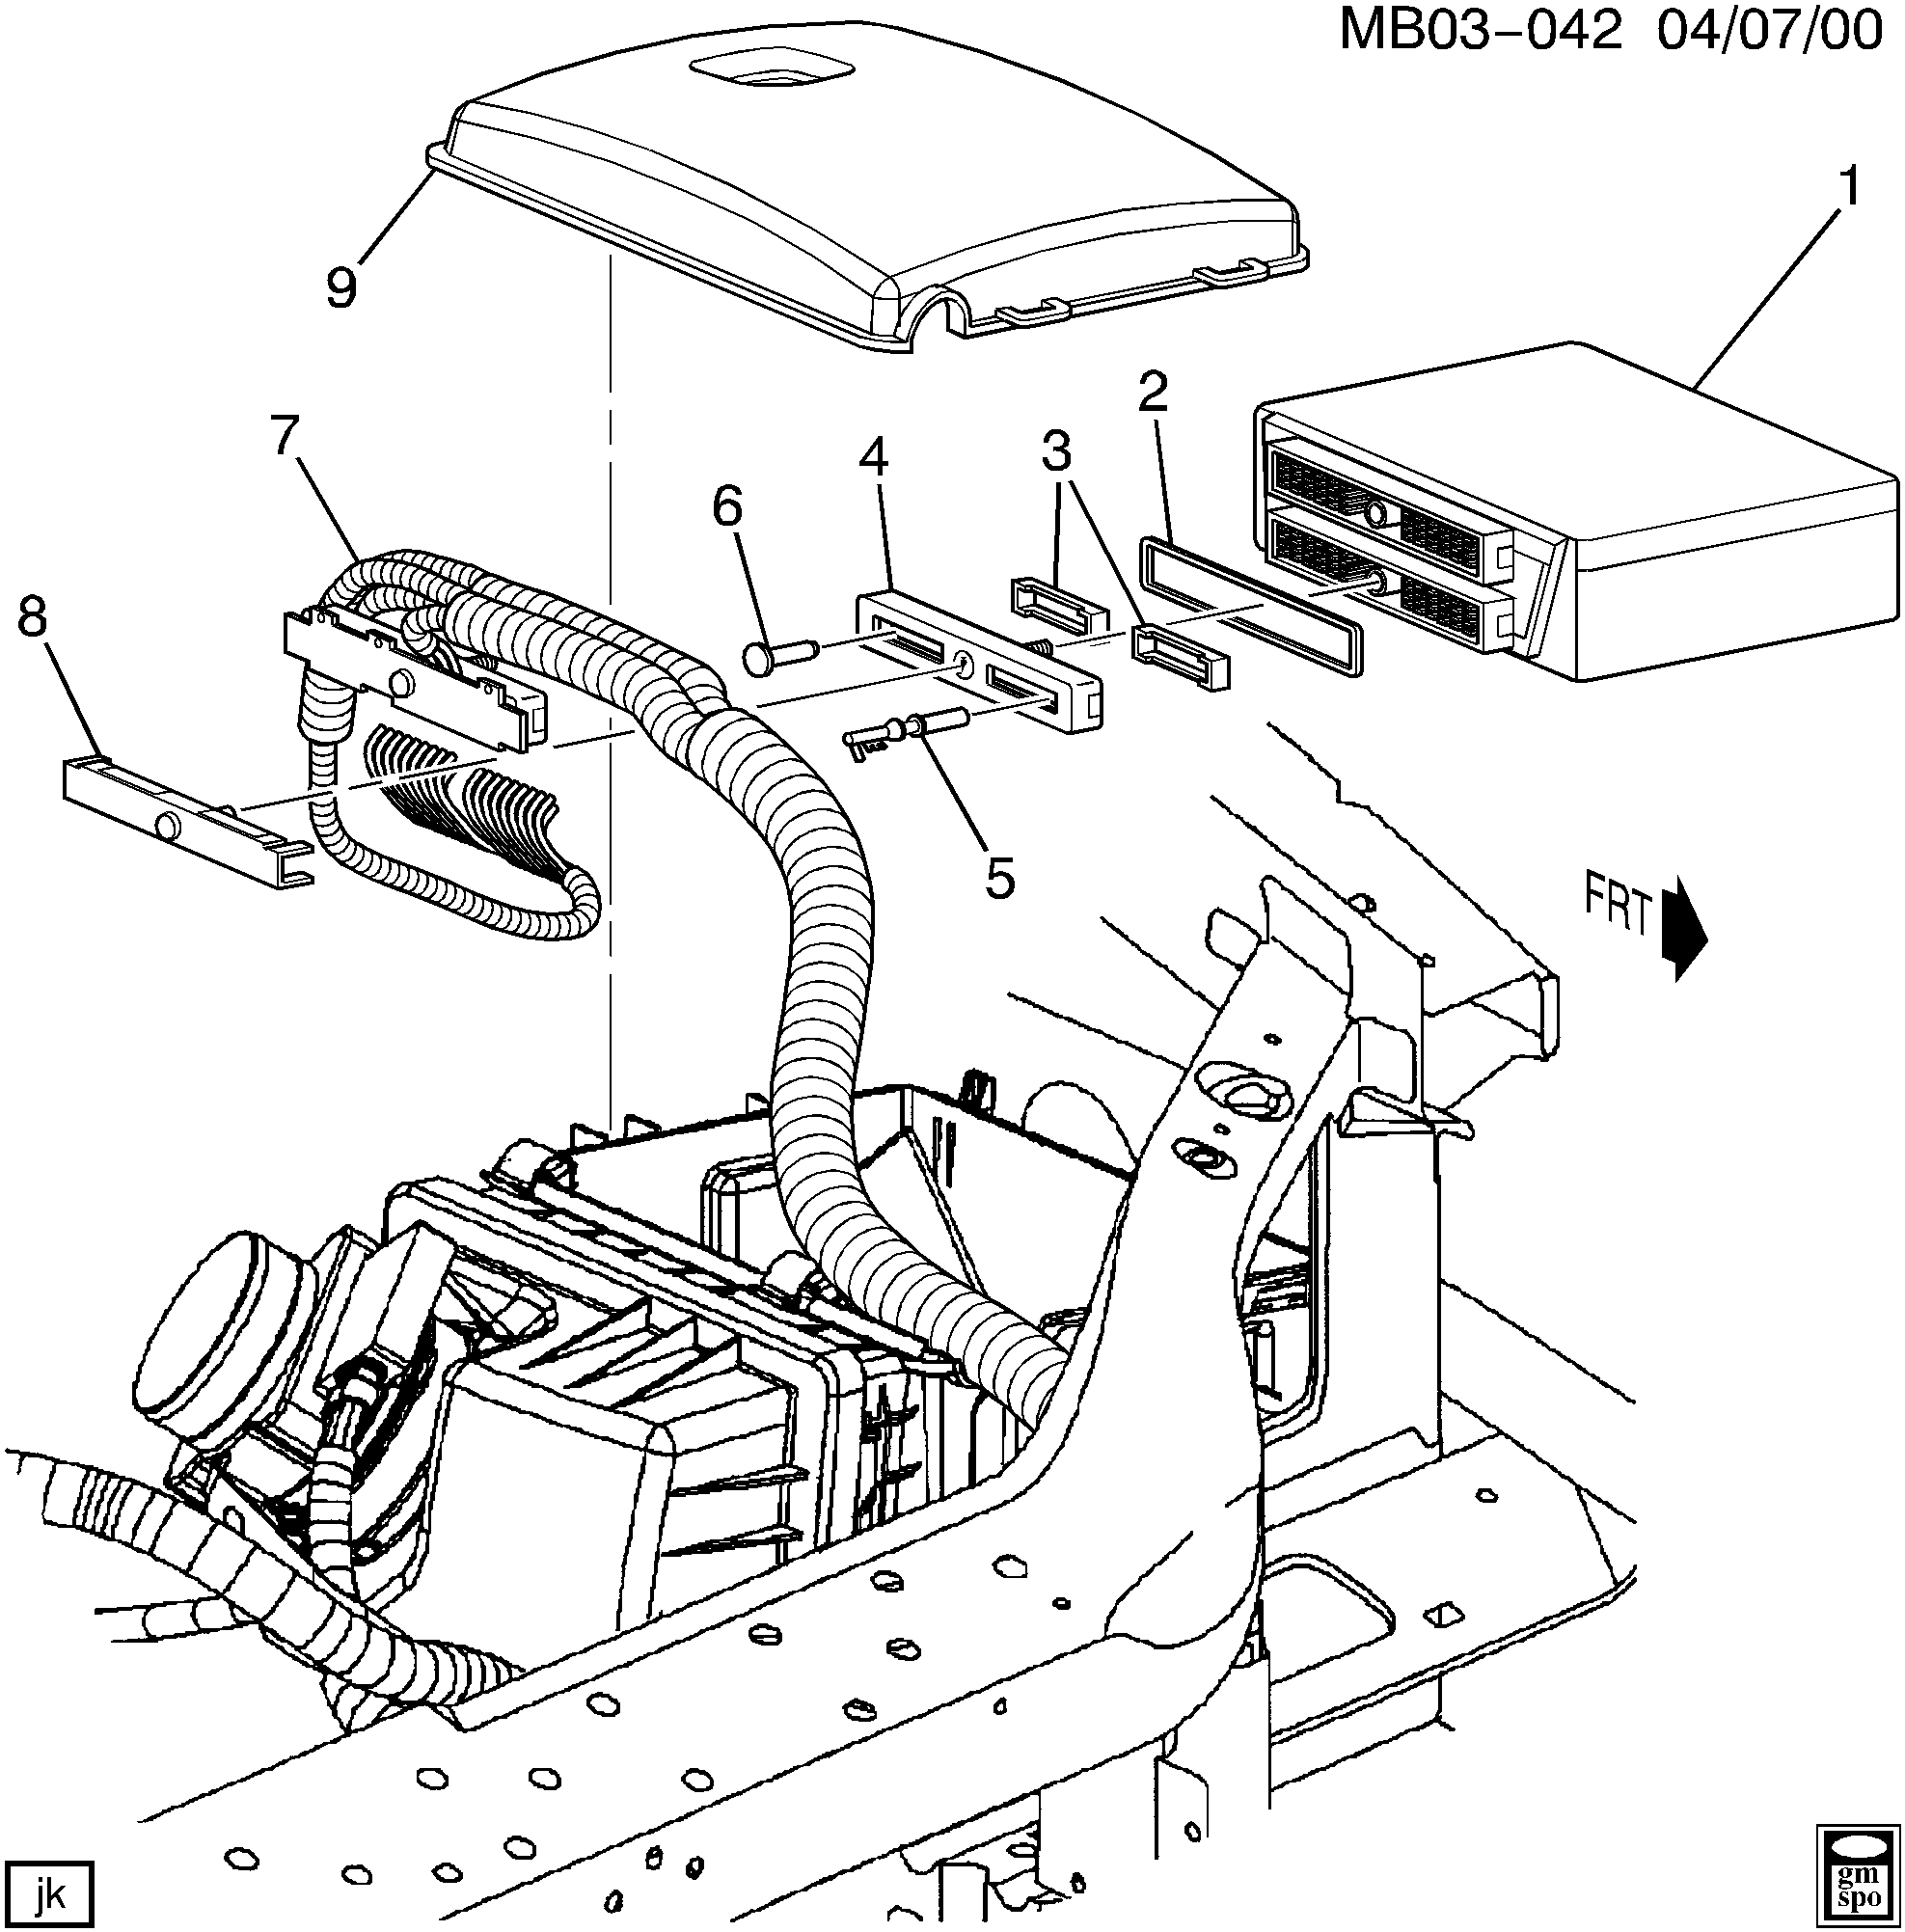 related with 2002 buick rendezvous blower motor wiring diagram